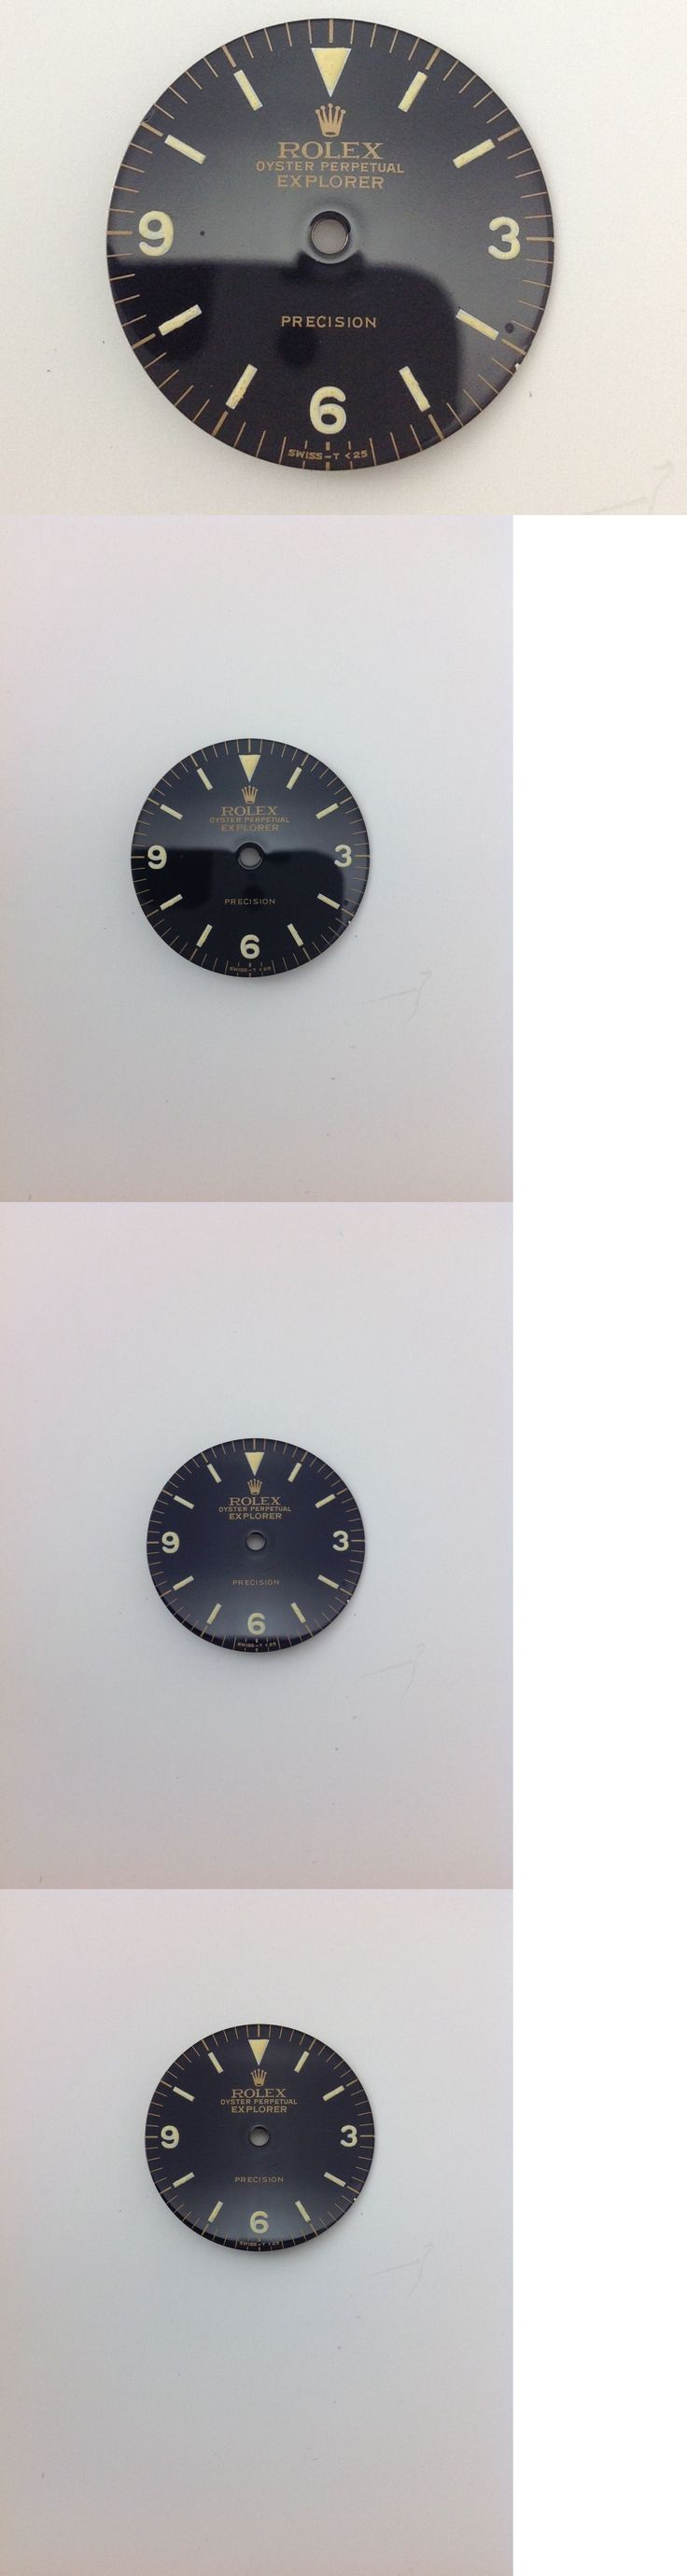 Other Watch Parts 10324: Vintage Rolex Tudor Explorer Dial -> BUY IT NOW ONLY: $199.99 on eBay!